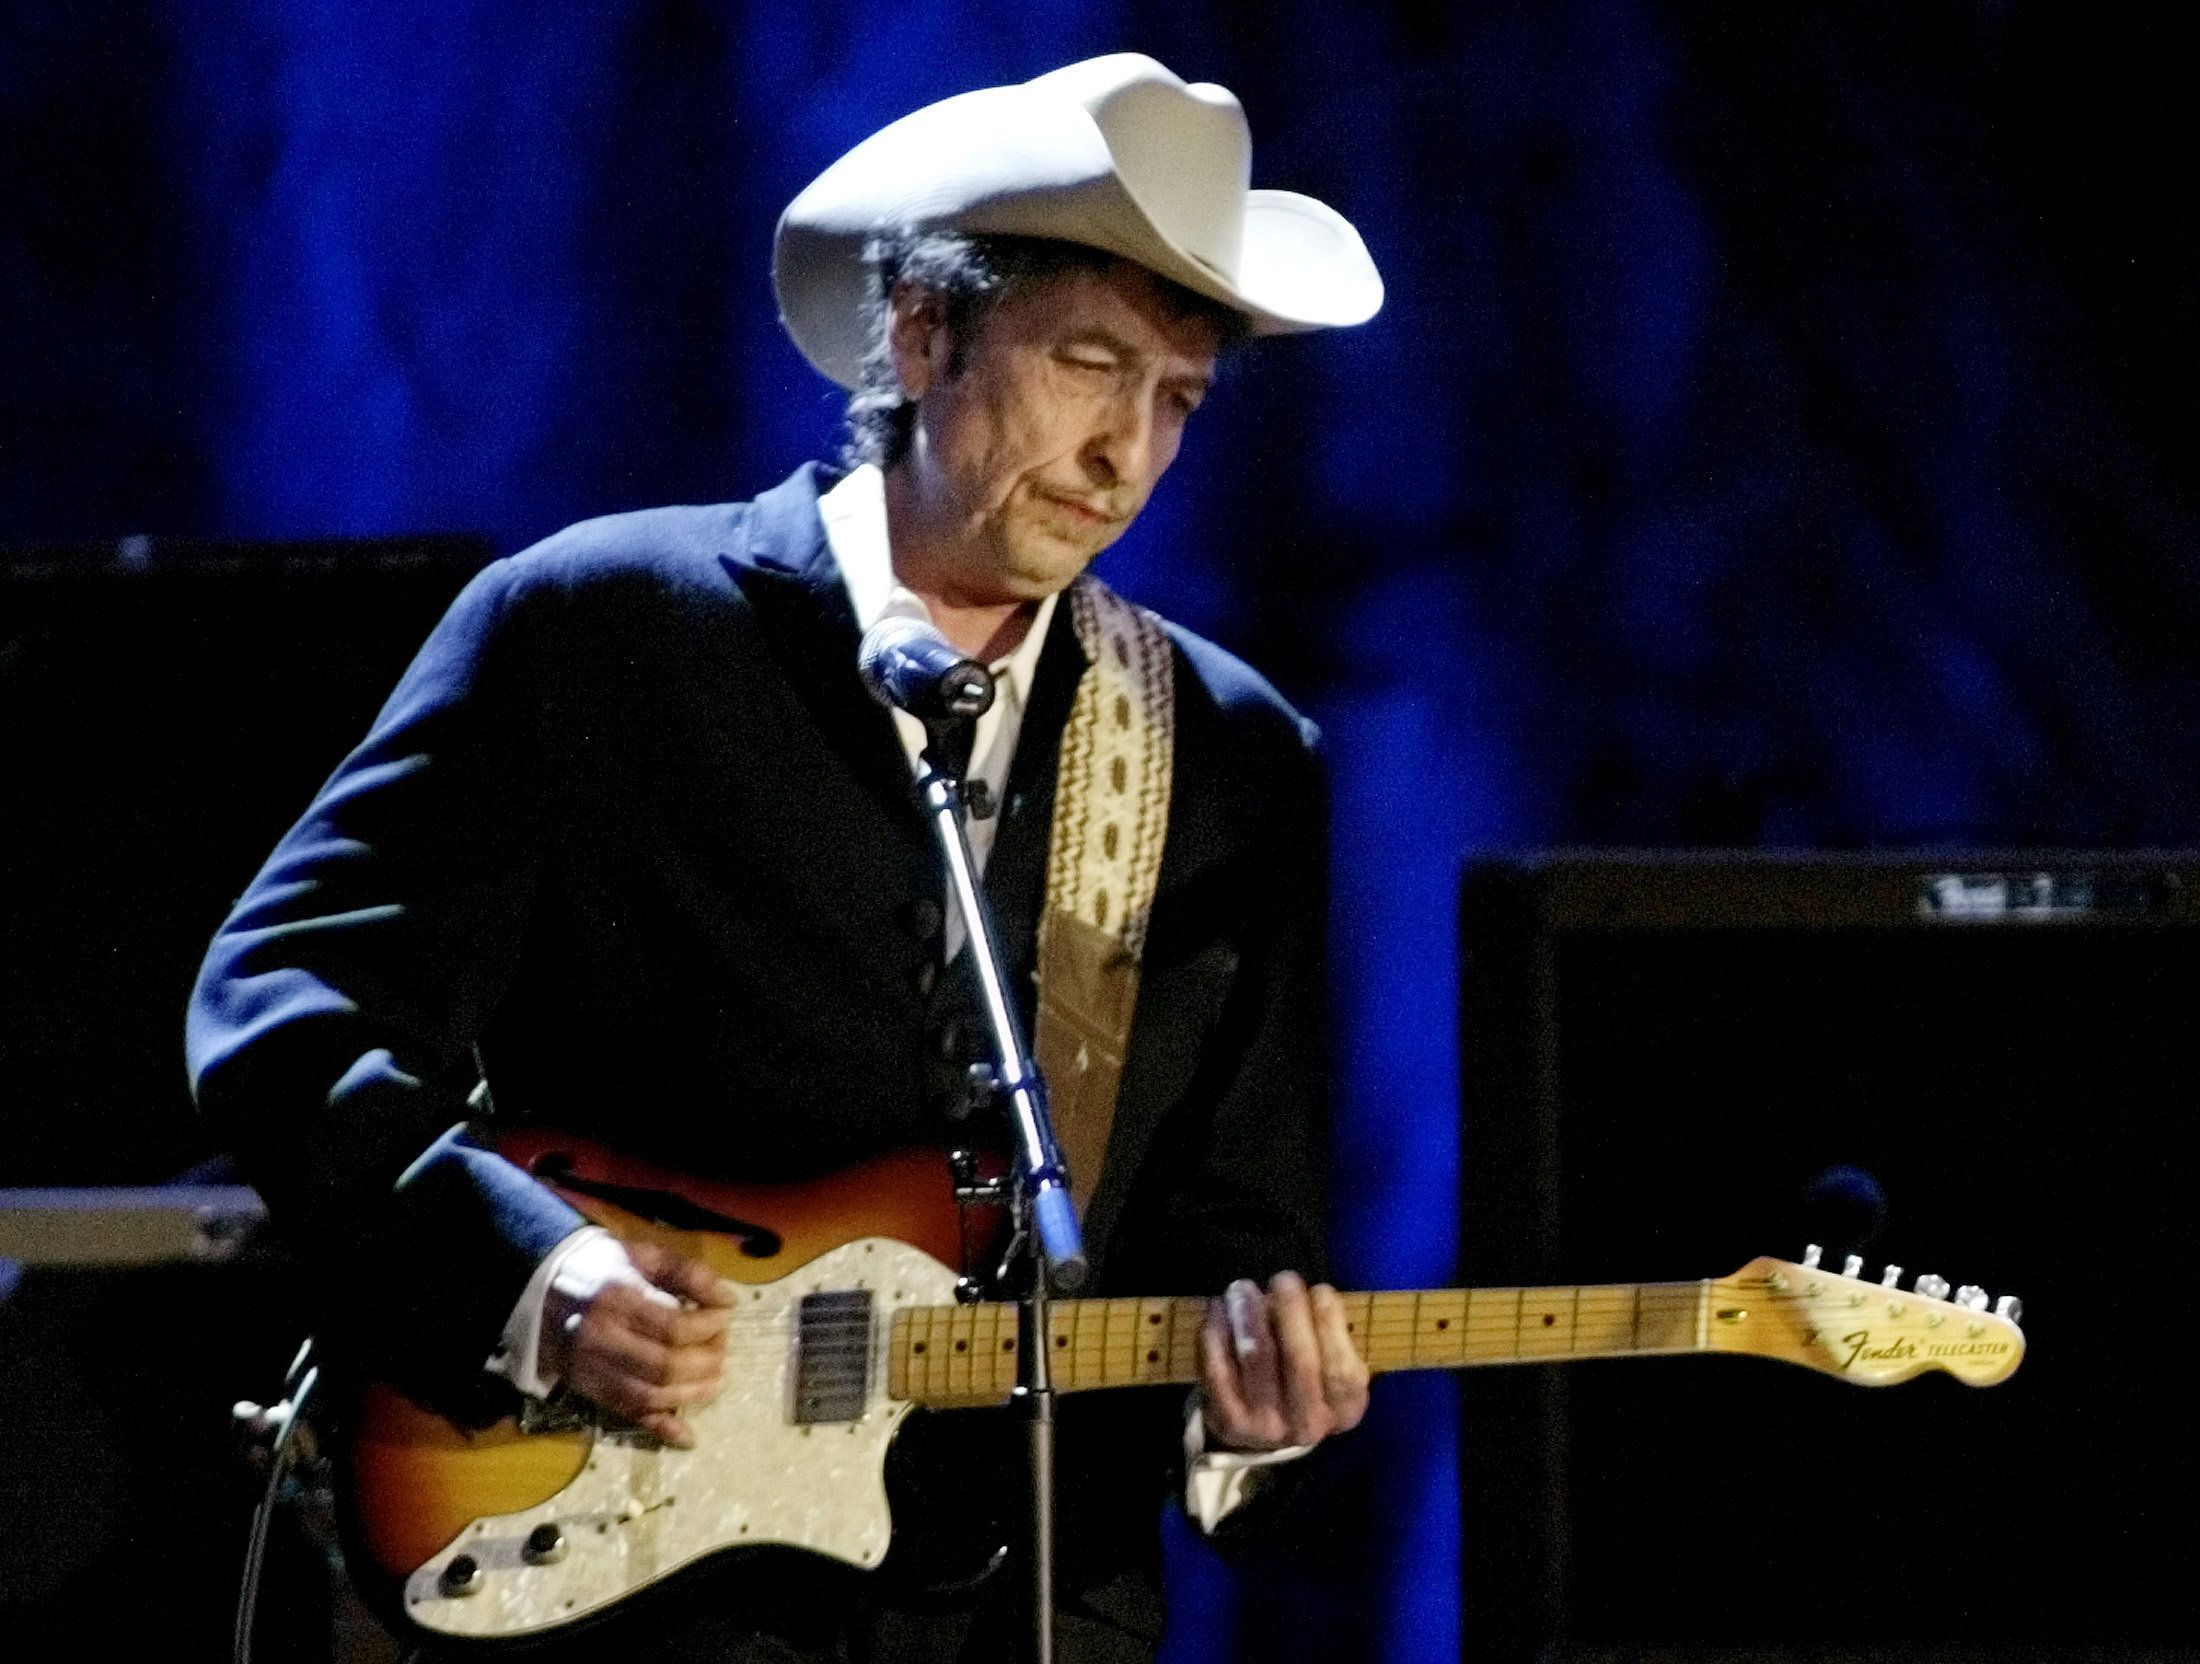 Bob Dylan hasn't returned any calls from the Nobel prize committee after winning the award for literature...